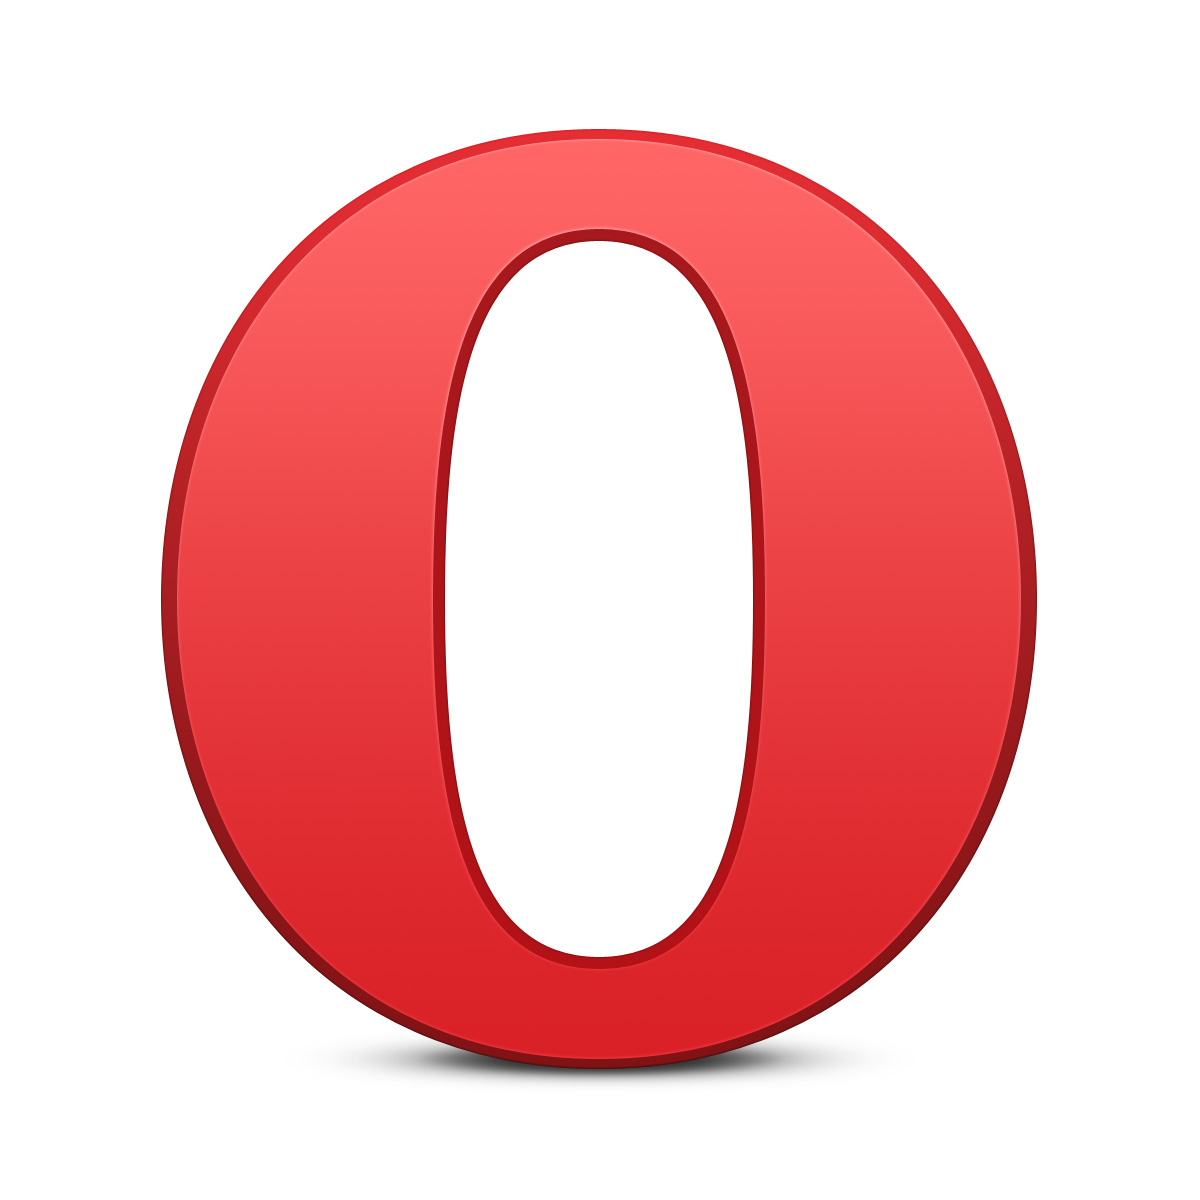 image showing the logo of Opera